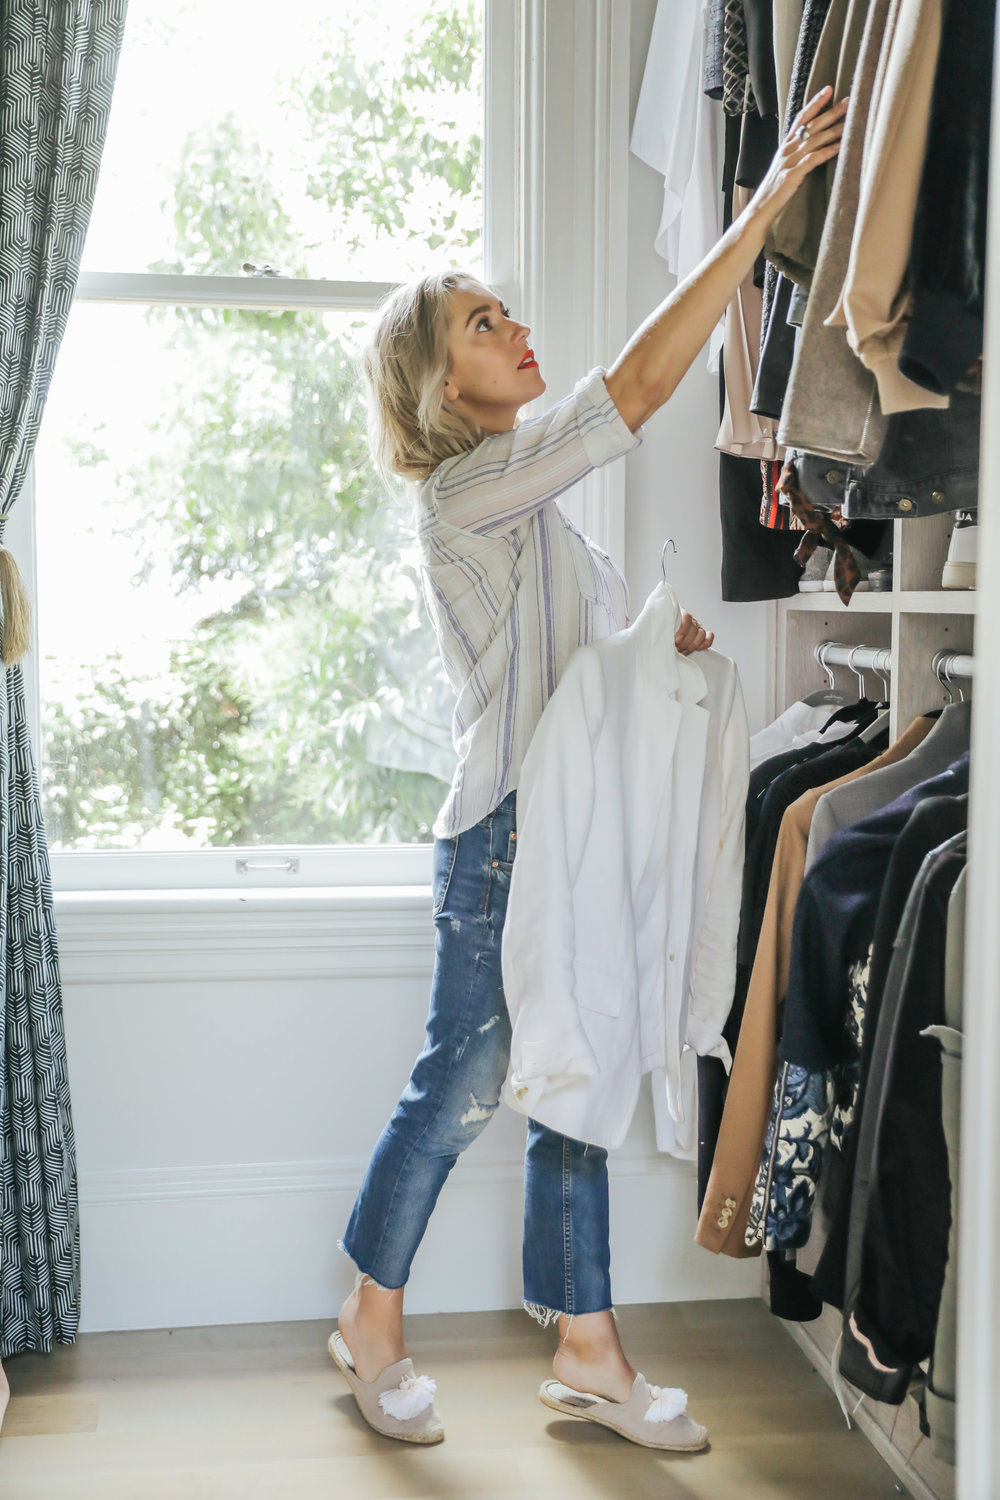 Closet Purge - Purging can be really emotional but in the end, very freeing for most clients. Just know that there is no pressure to get rid of anything if you aren't ready, but that by letting go of pieces that are no longer serving you, this allows room for growth and discovery of a style that fits who you are and want to be.